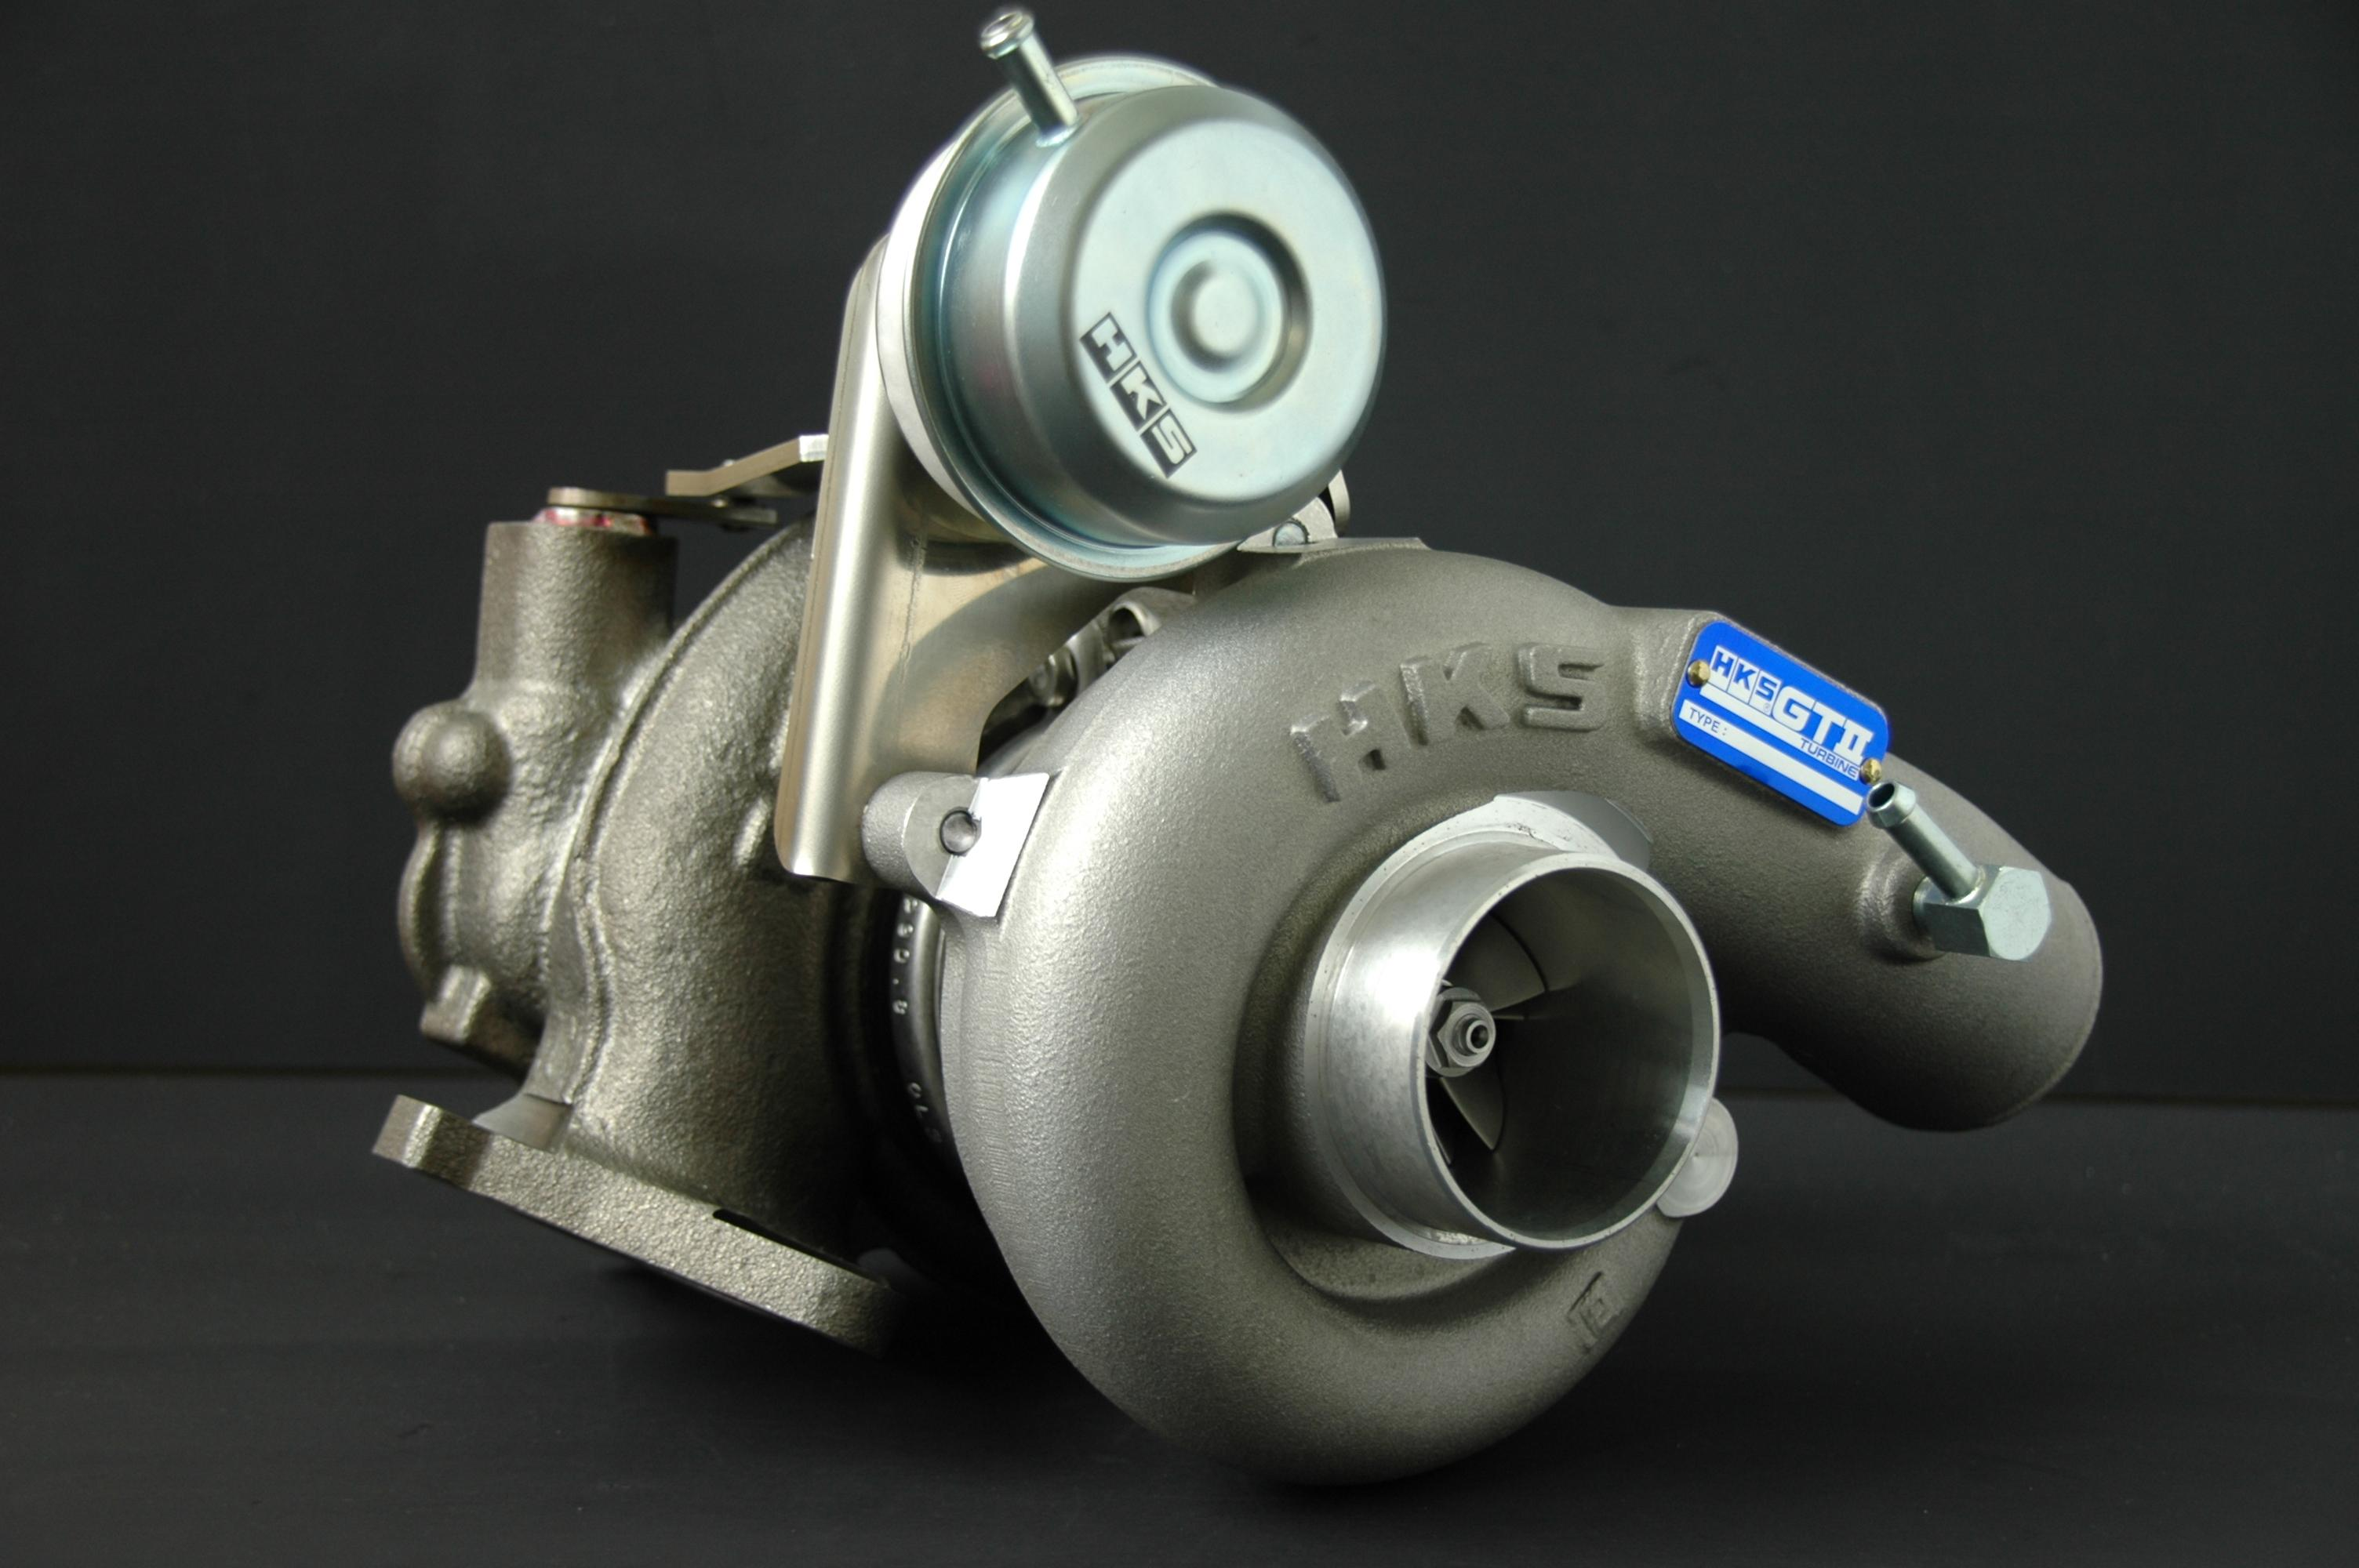 Subaru Impreza EJ25 HKS GTII 7460 Uprated Sports Turbine kit